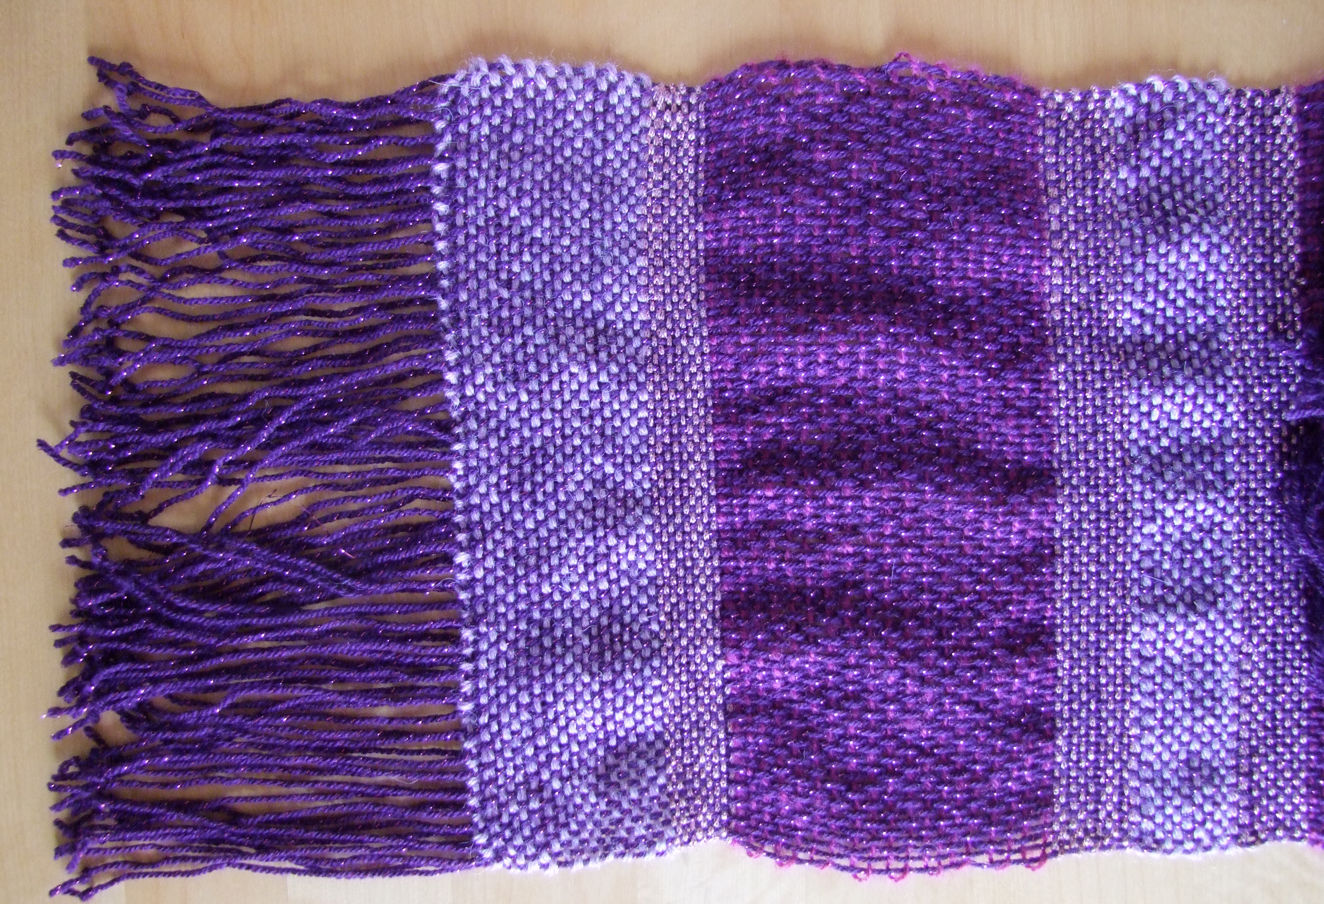 Woven Scarf1 Purplish Knitting Project By Eve W Loveknitting